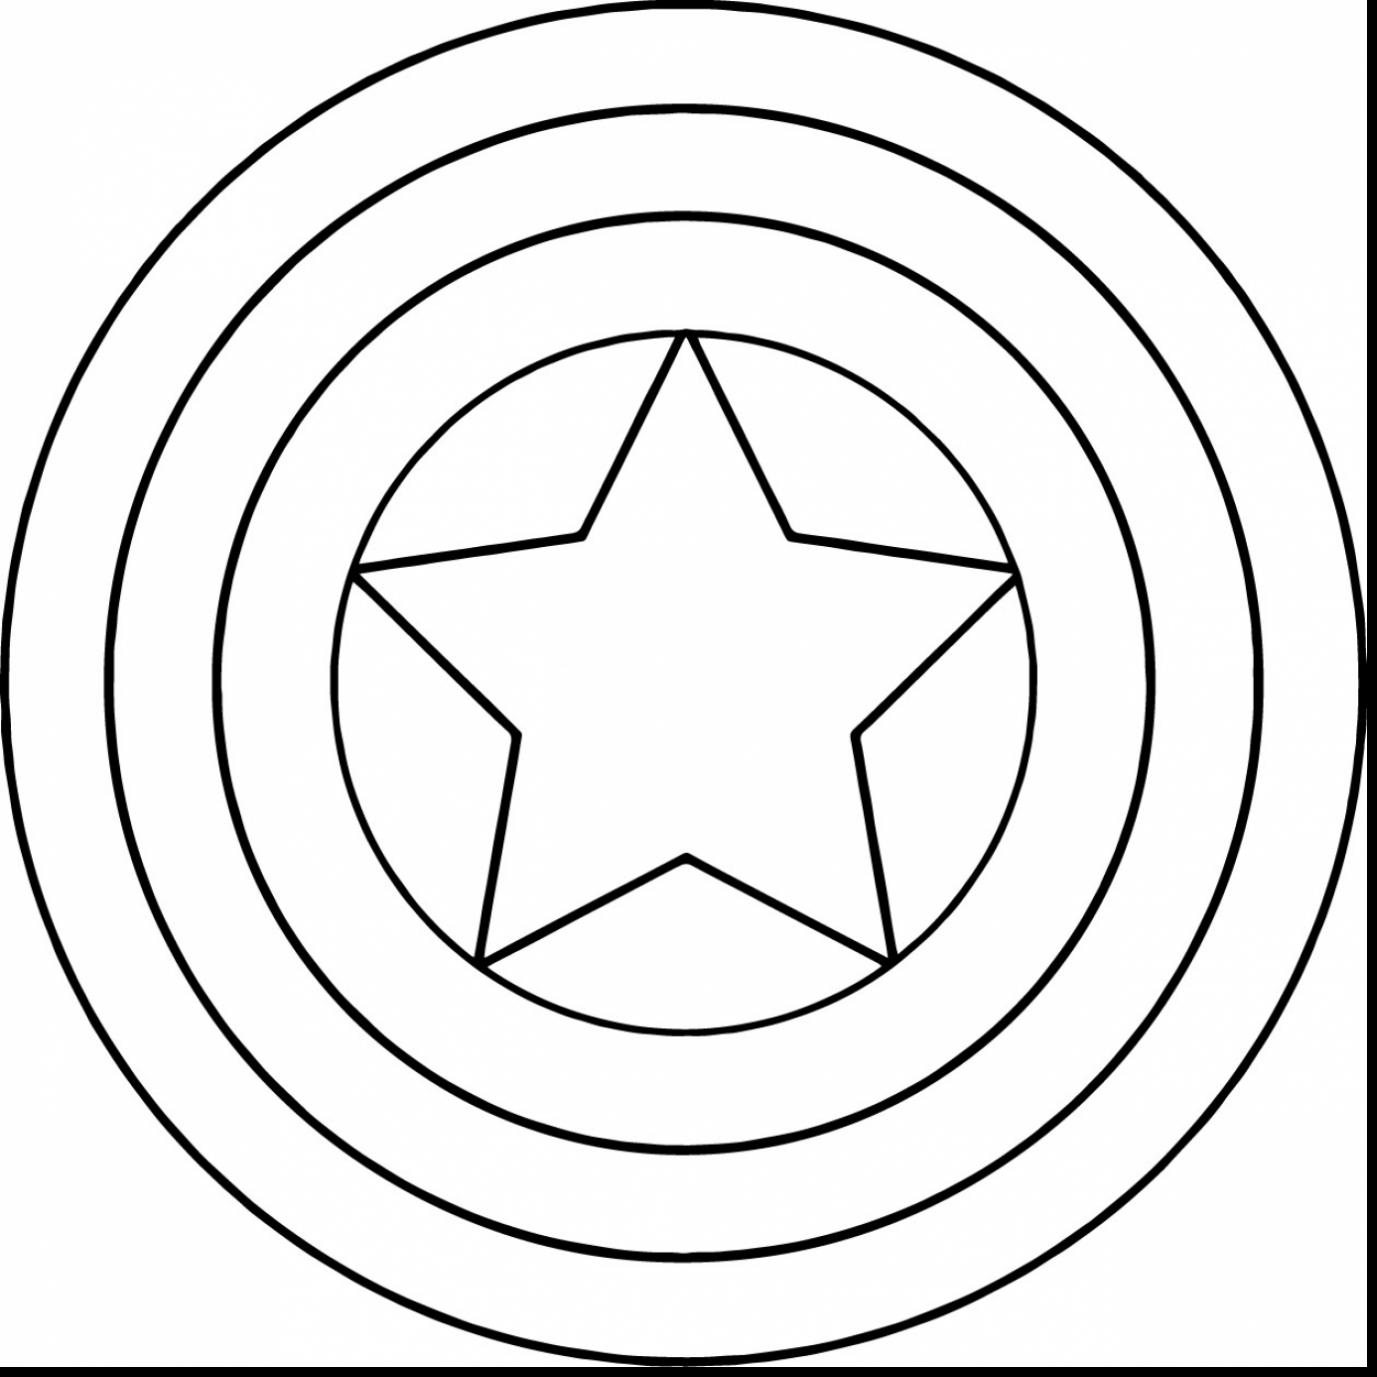 coloring pages american shield - photo#5